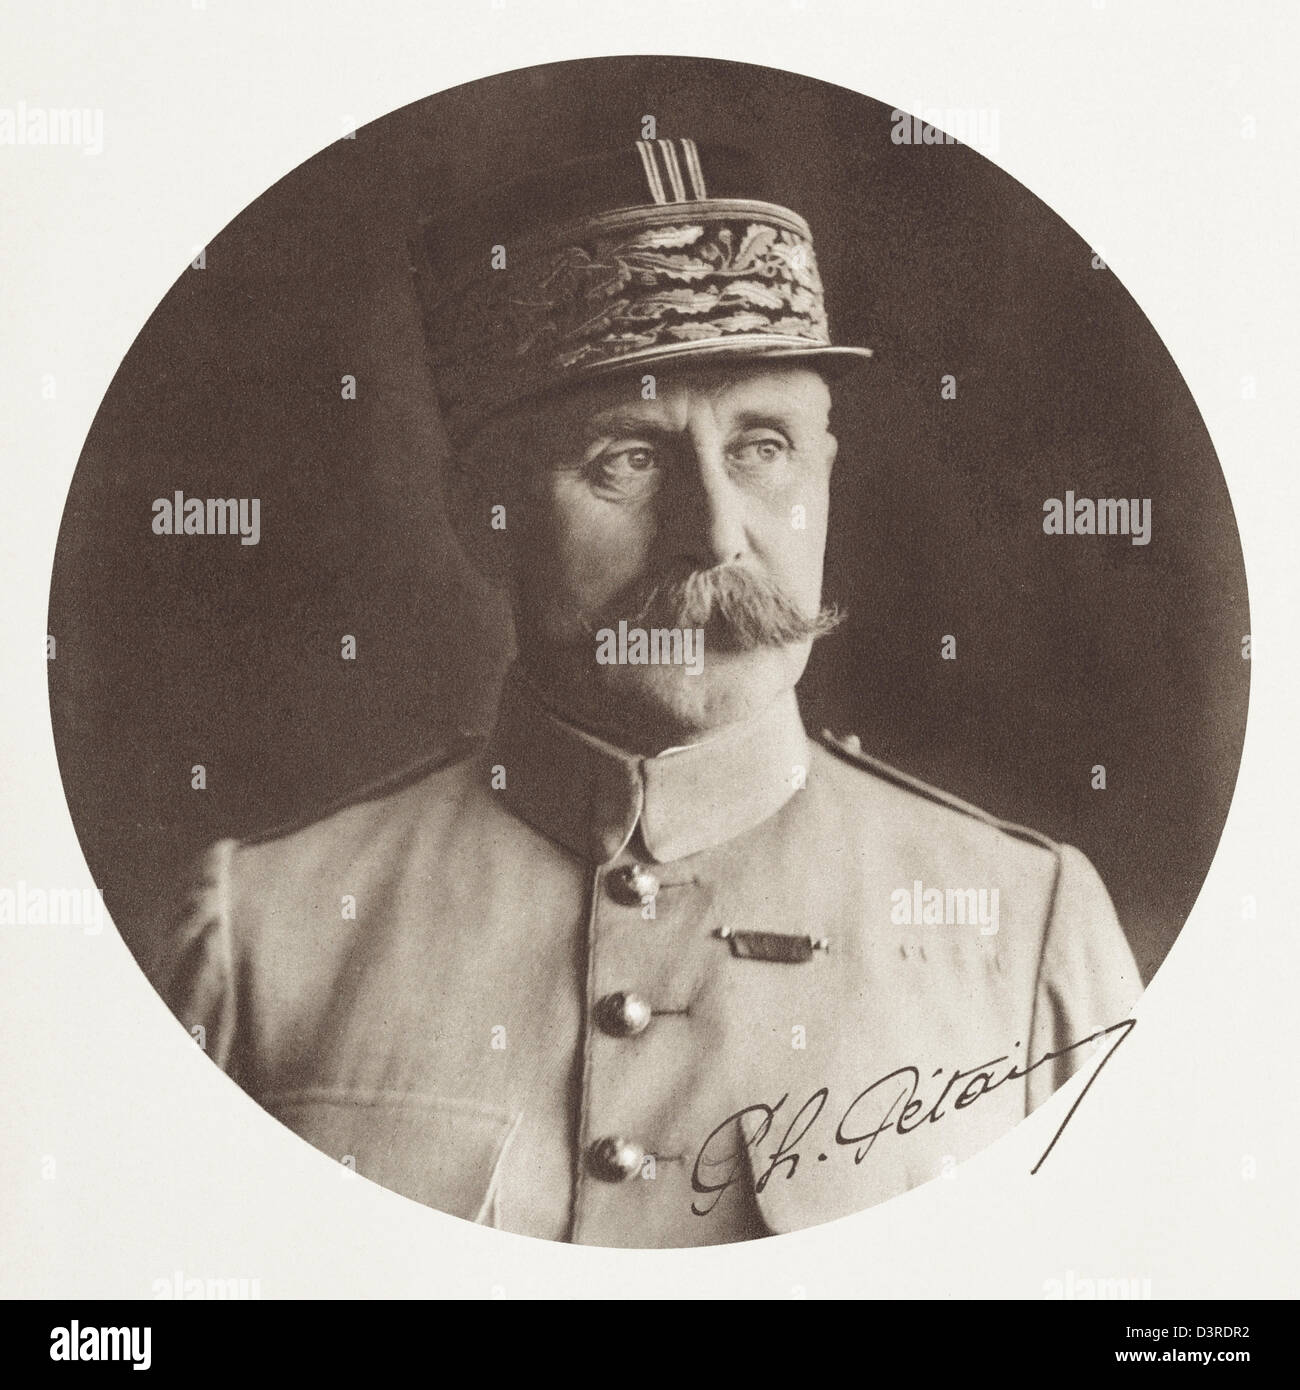 Philippe Petain, First World War General and President of France during the Second World War in the Vichy Government. Stock Photo